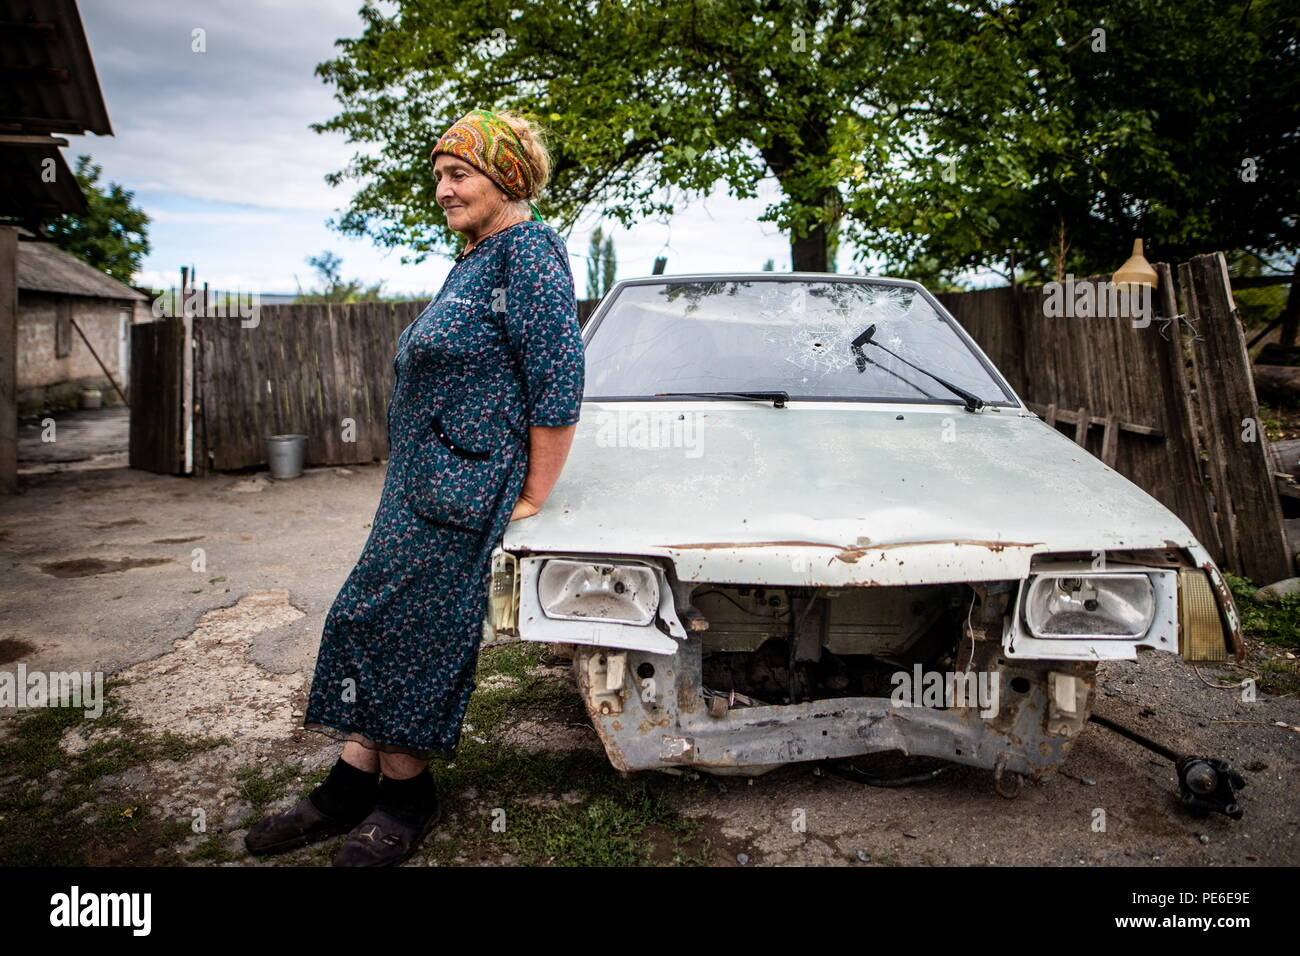 South Ossetia. 11th Aug, 2018. SOUTH OSSETIA - AUGUST 11, 2018: Margarita Madzigova, 63, poses standing by a car damaged in the 2008 South Ossetian-Georgian military conflict, in the village of Khetagurovo, Tskhinvali District, South Ossetia; Margarita and her husband Alikhan have been running a farm since their house was restored after the conflict. Sergei Bobylev/TASS Credit: ITAR-TASS News Agency/Alamy Live News - Stock Image